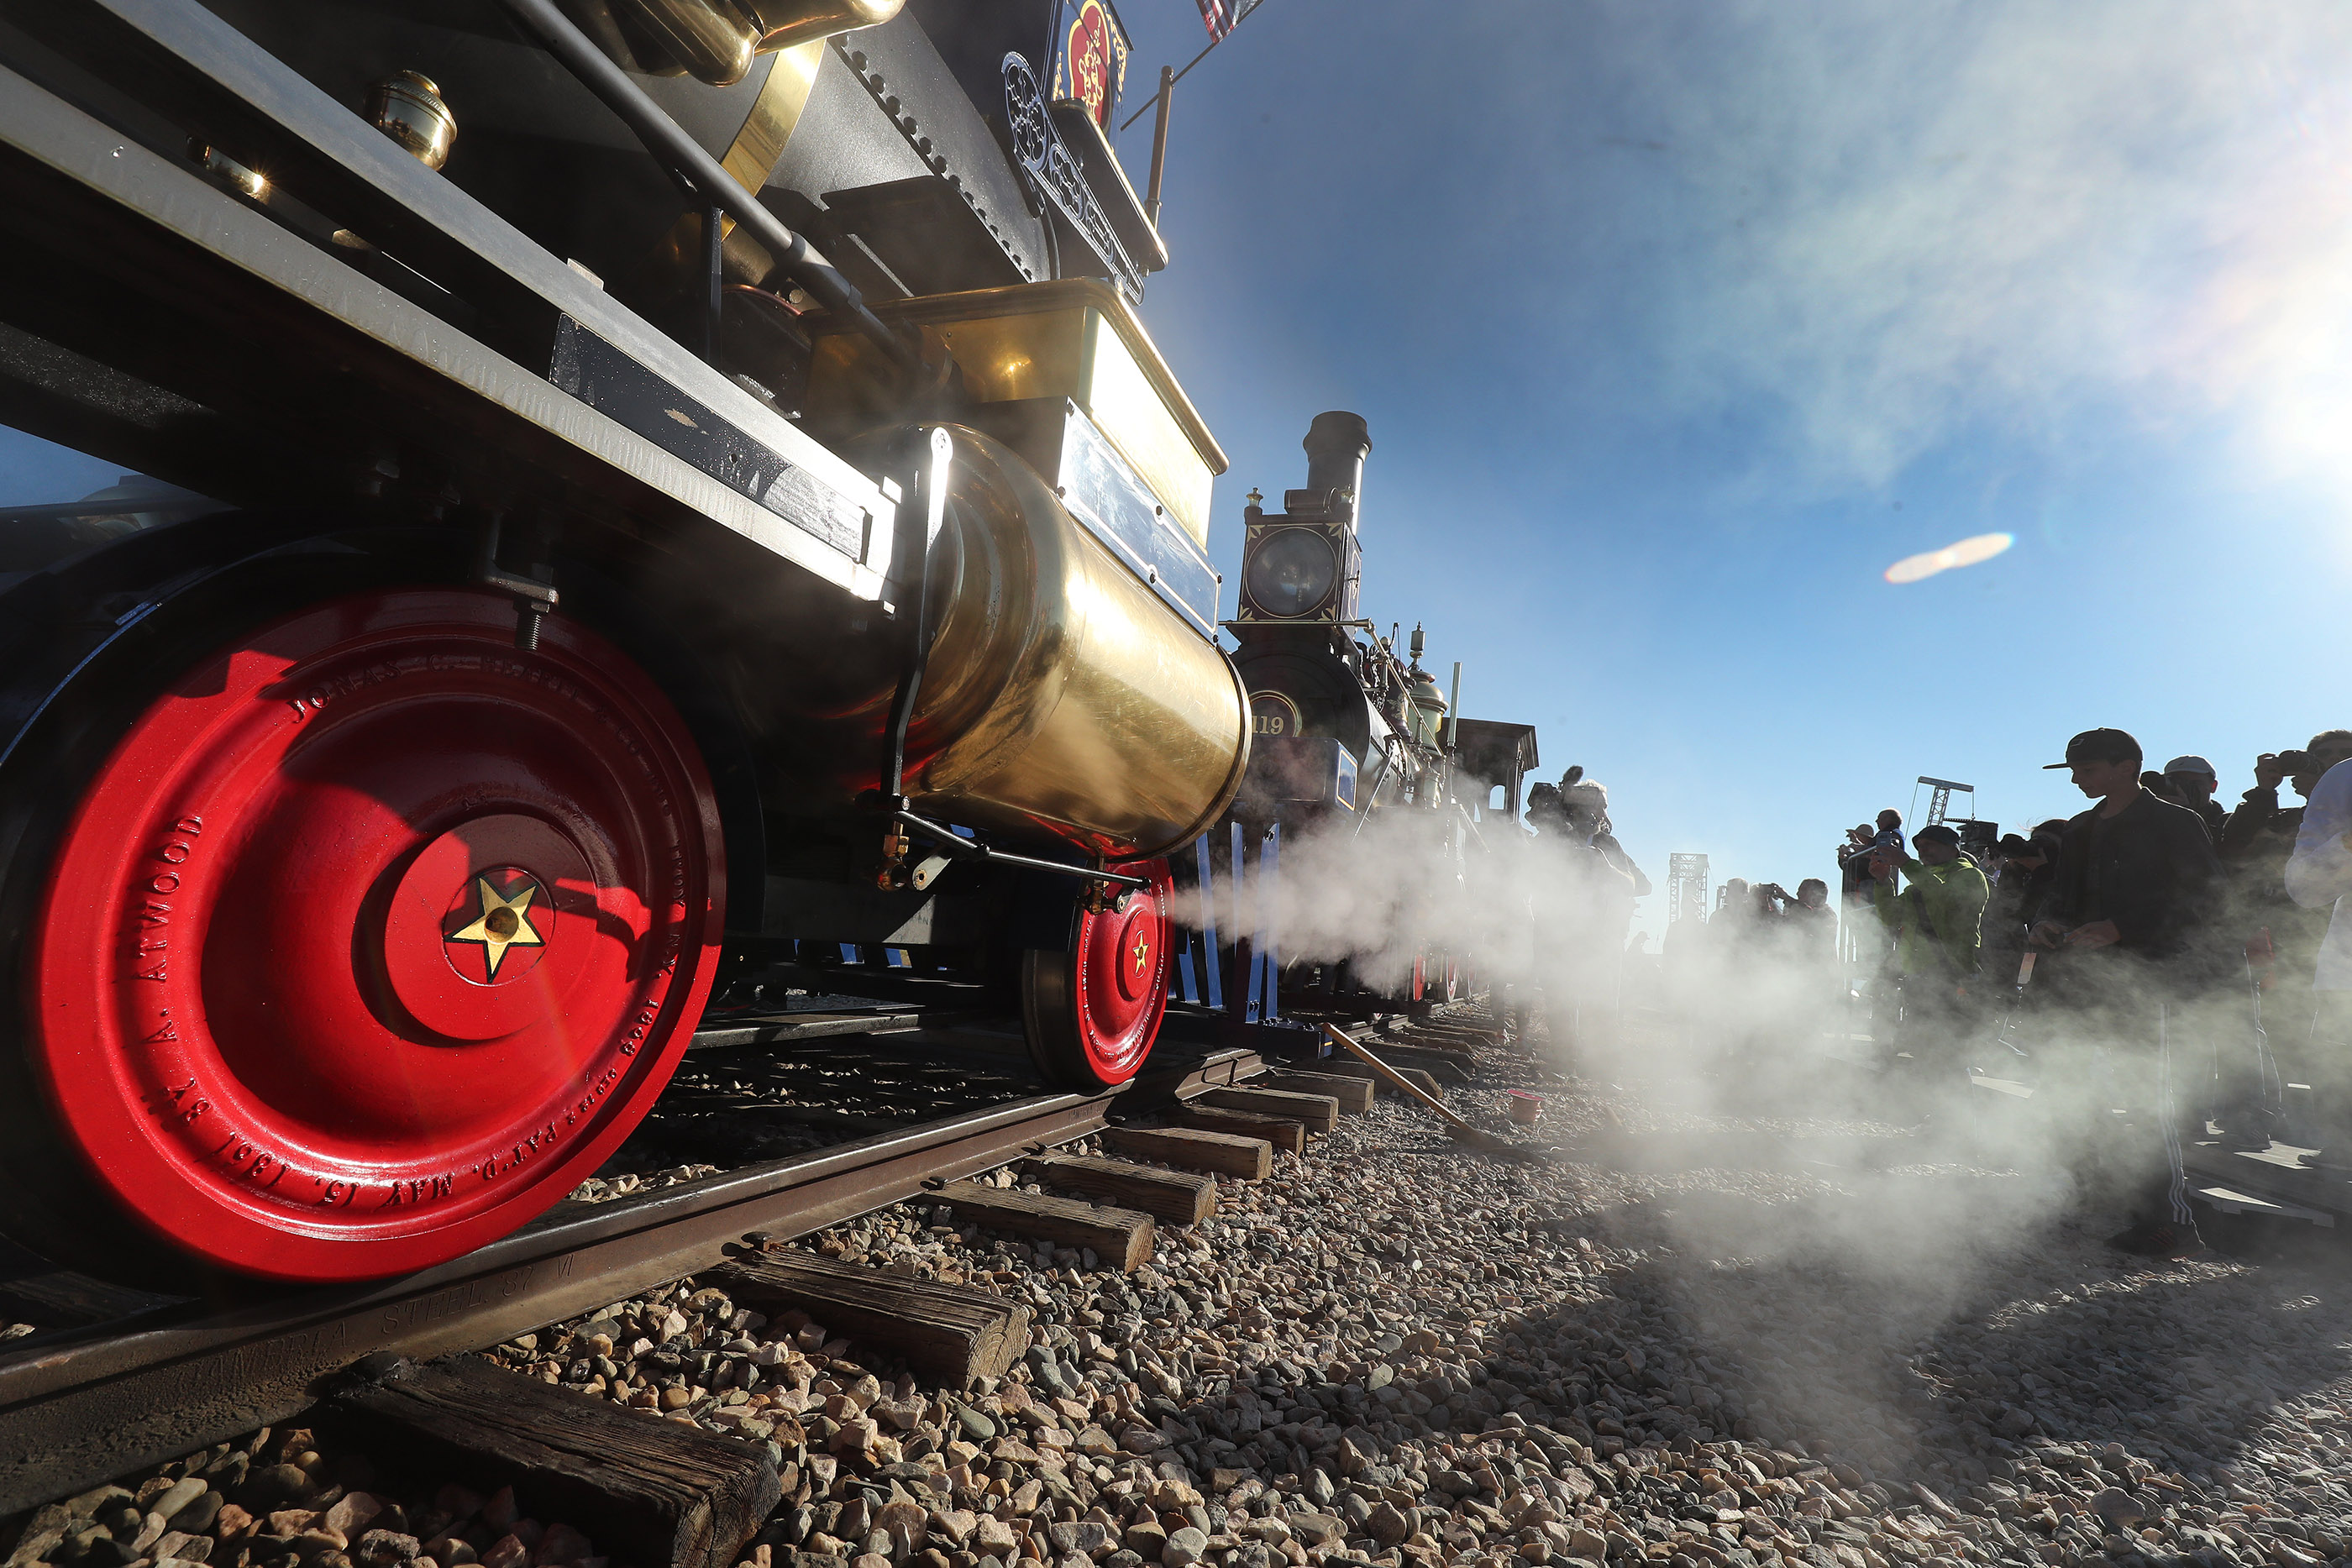 The Jupiter and No. 119 engines are lined up during the 150th anniversary celebration at the Golden Spike National Historical Park at Promontory Summit on Friday, May 10, 2019.